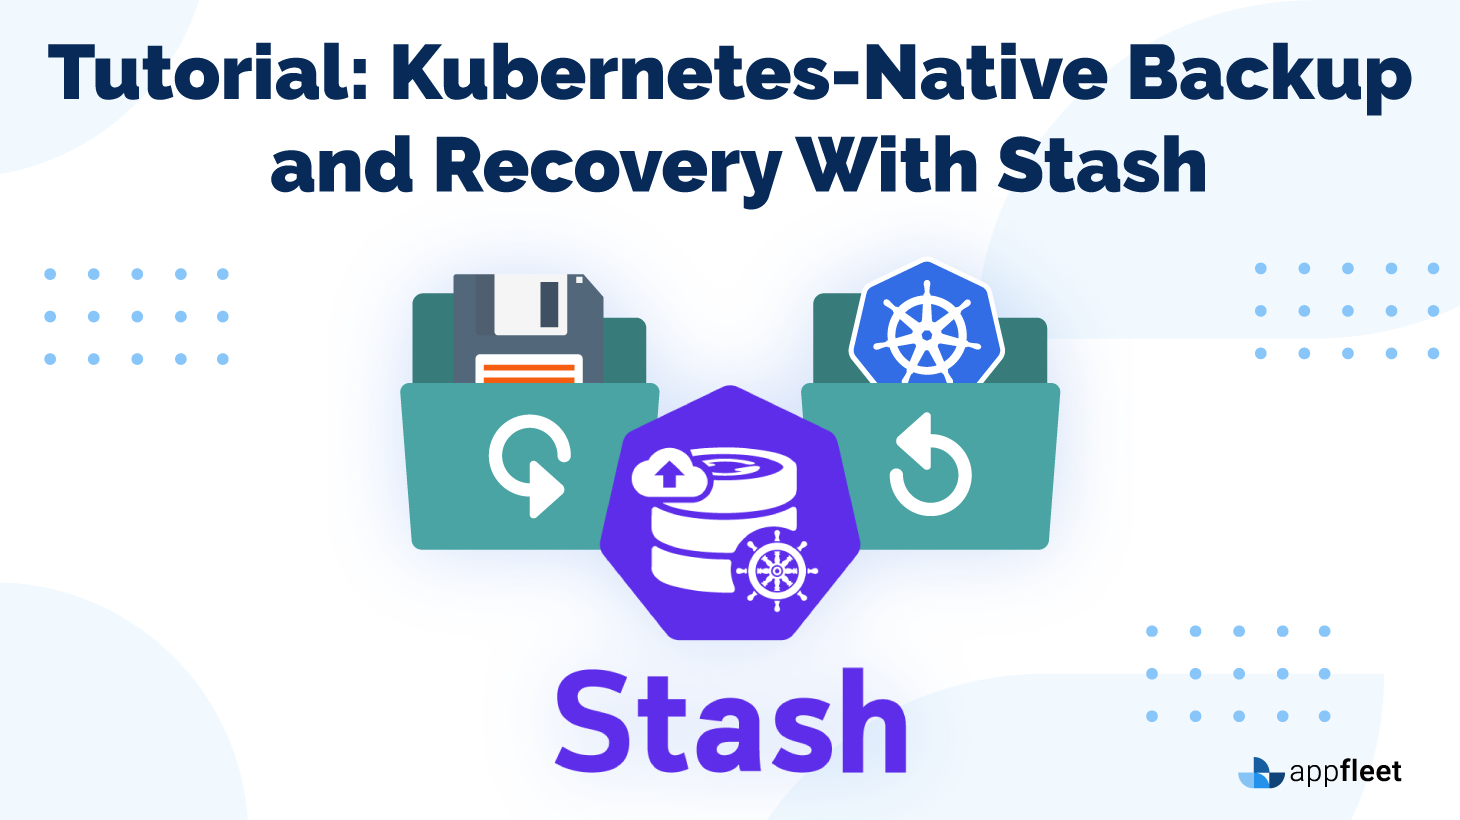 Tutorial: Kubernetes-Native Backup and Recovery With Stash